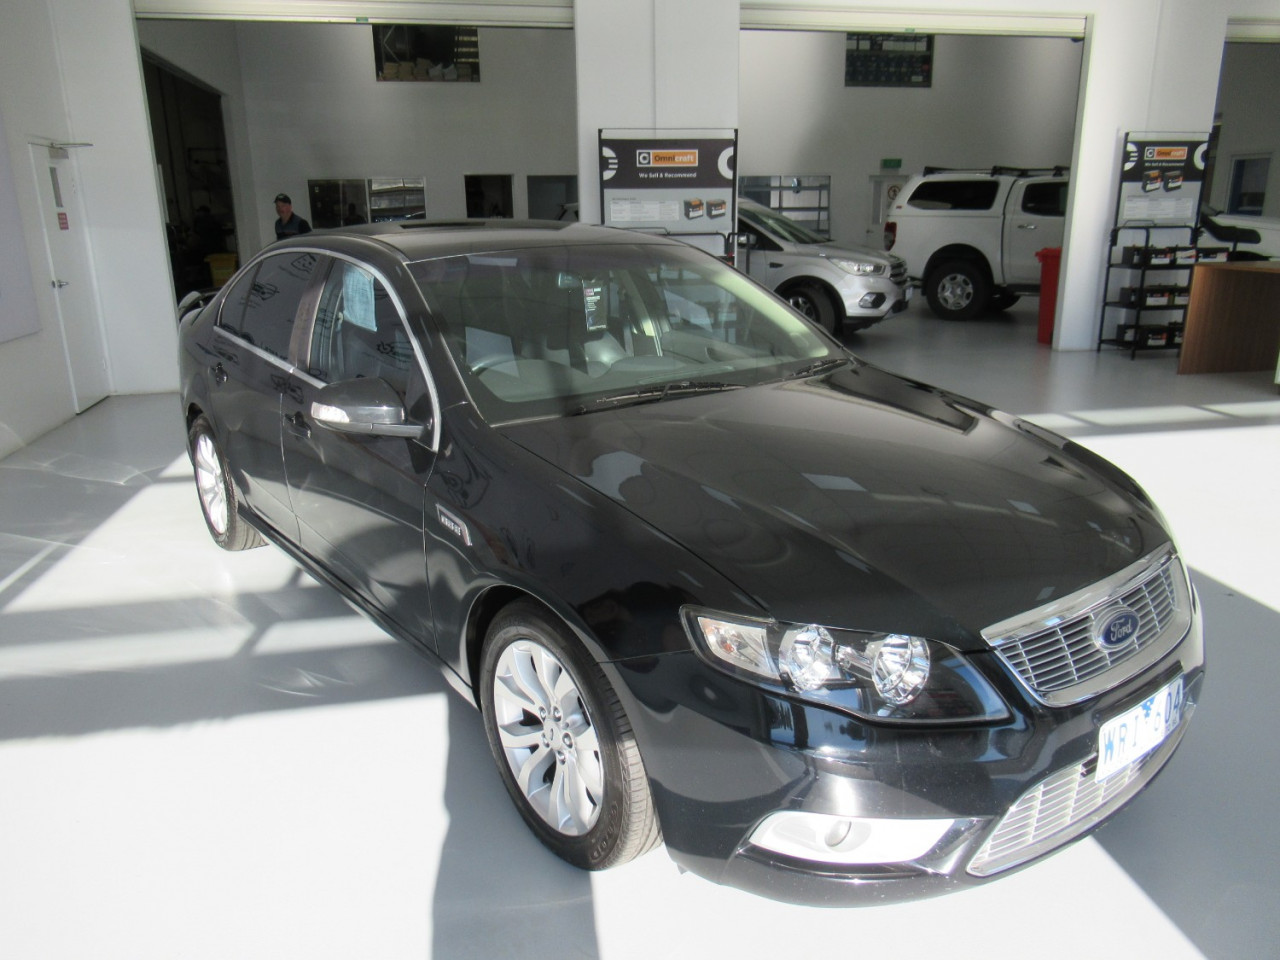 2008 Ford G6 Series FG G6E Sedan Image 4